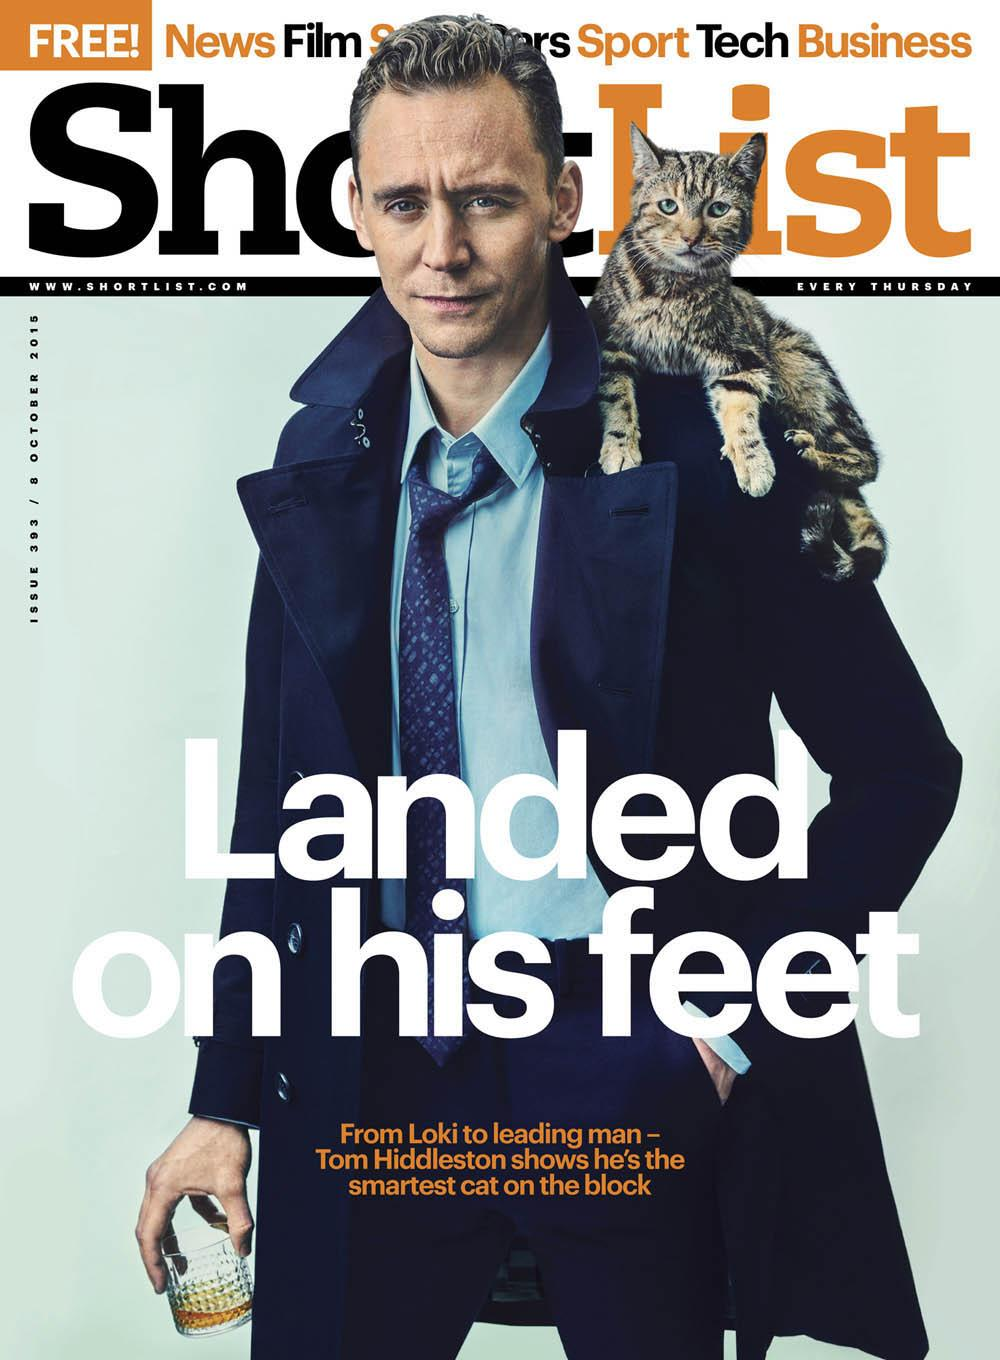 (UK) SHORTLIST MAGAZINE OCT 8 2015 TOM HIDDLESTON CRIMSON PEAK PHOTO INTERVIEW